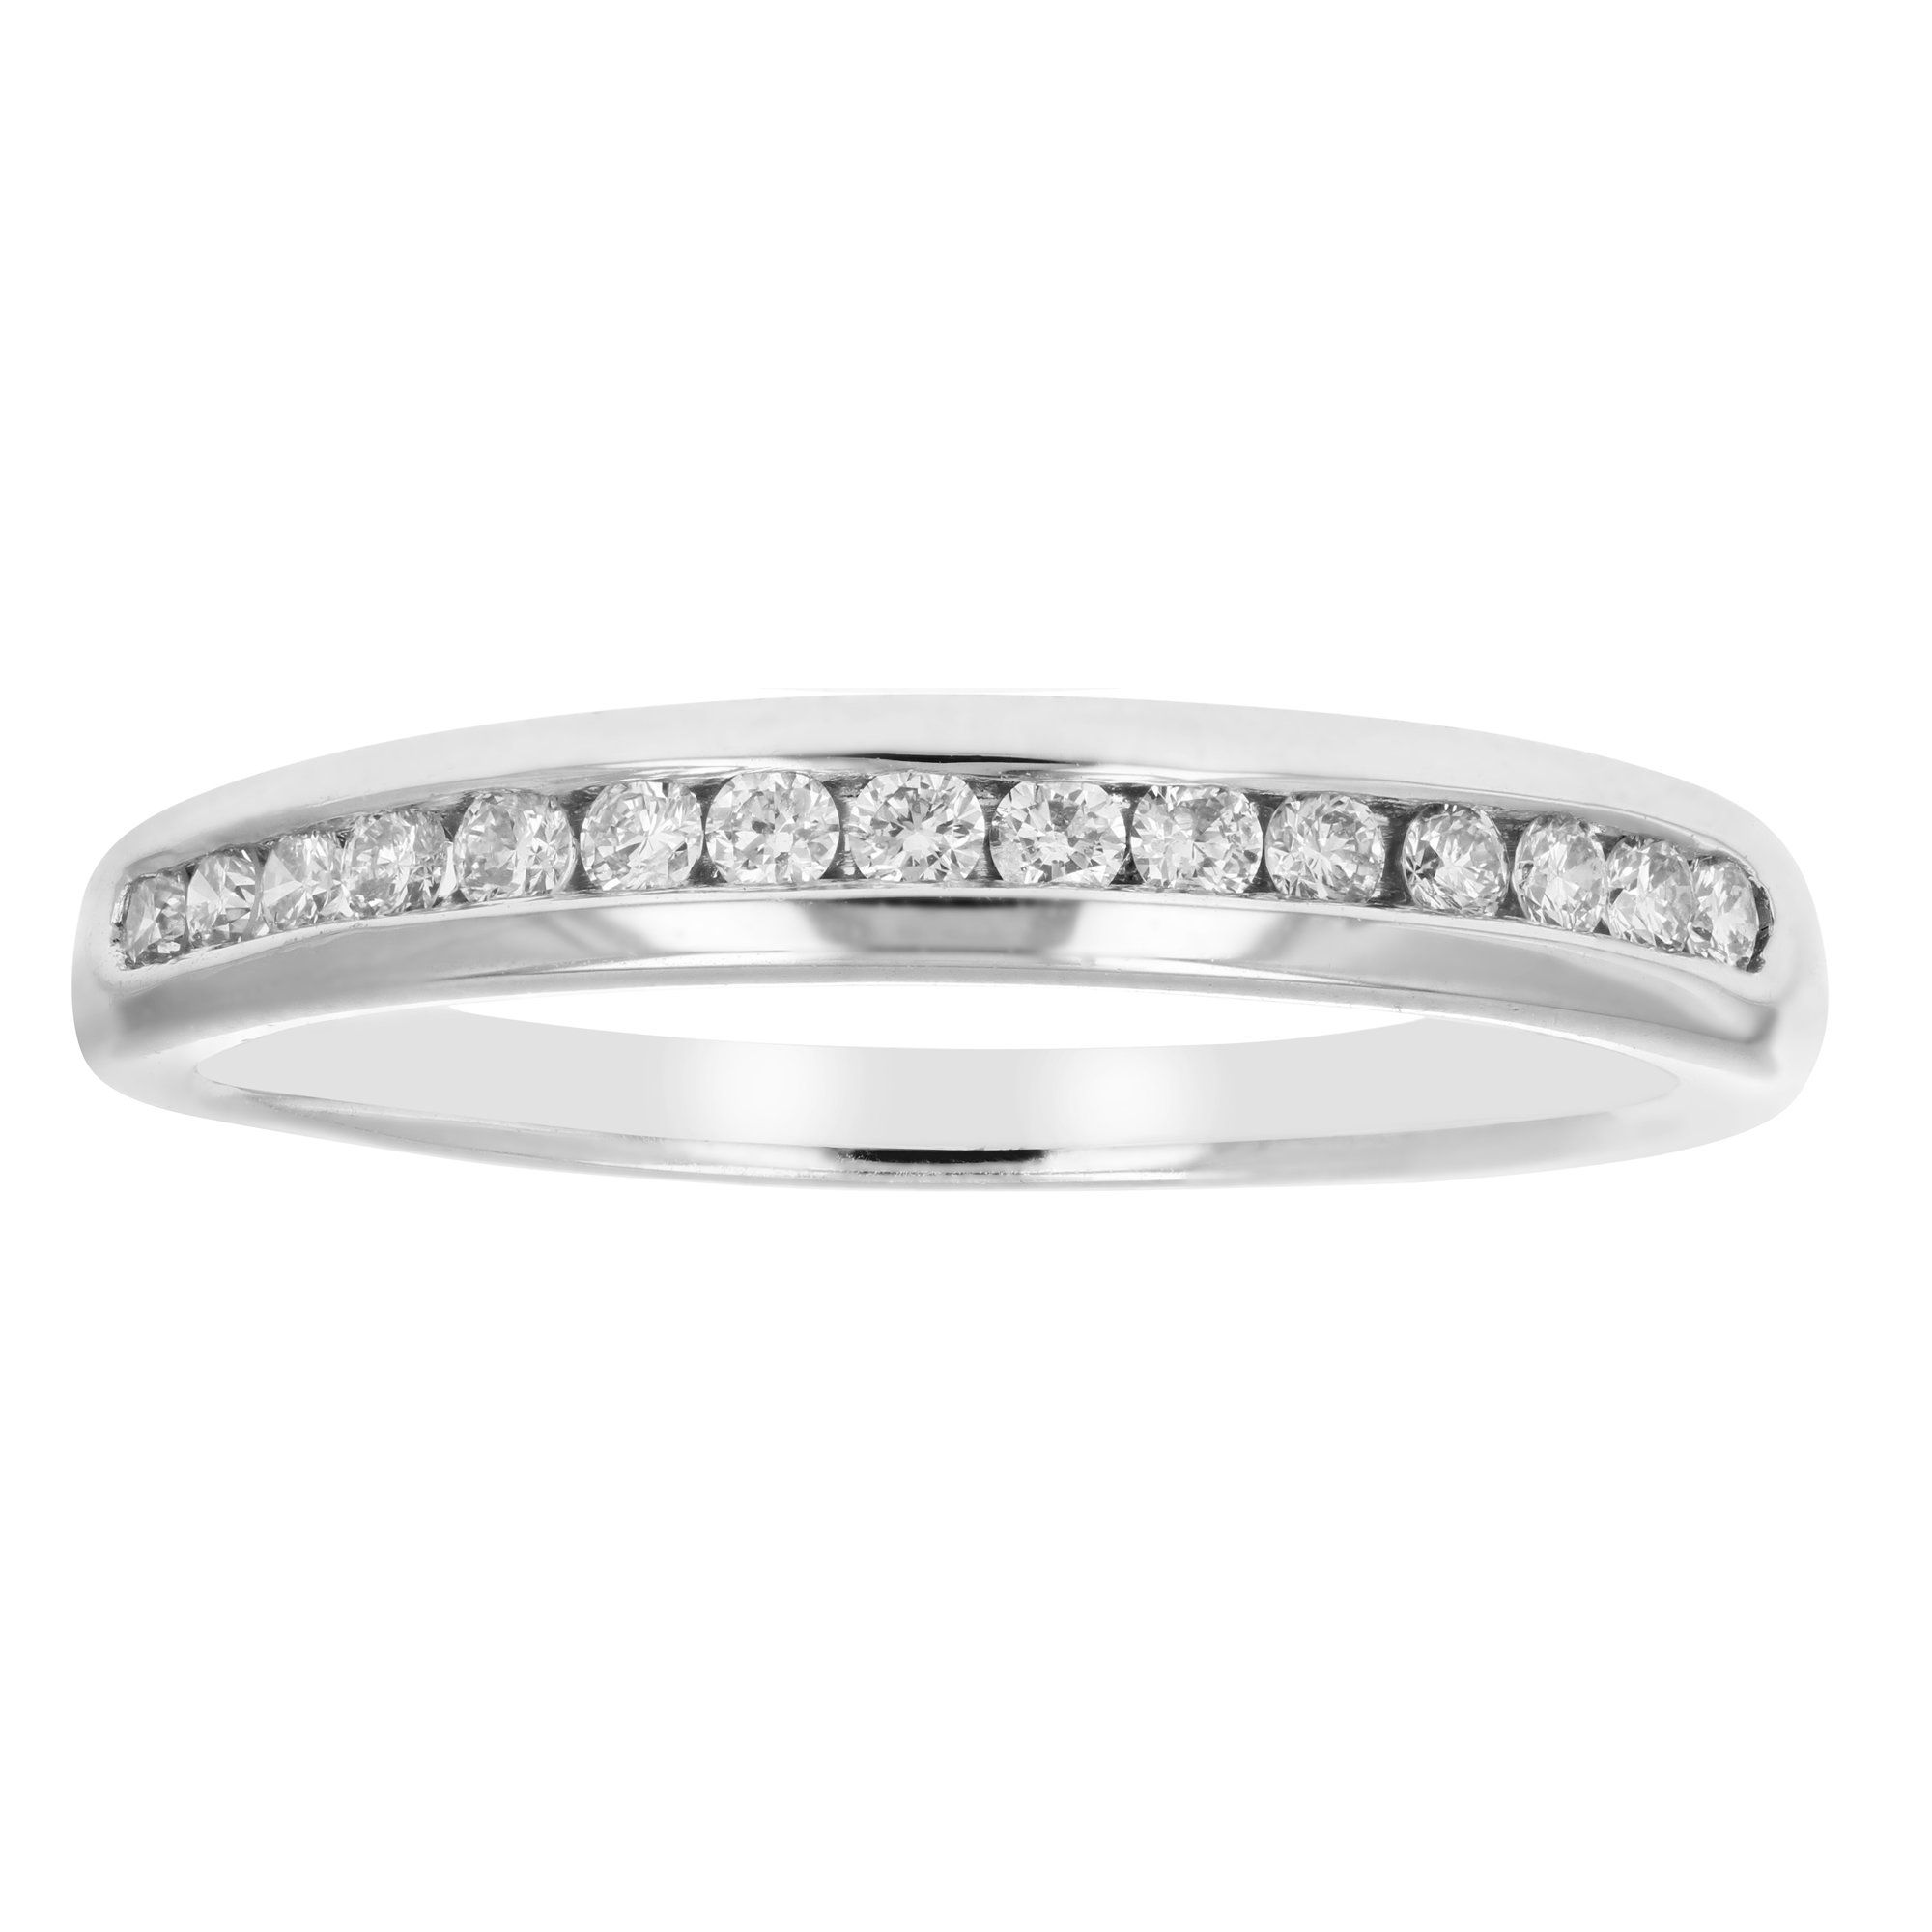 1/5 ctw Classic Diamond Wedding Band in 10K White Gold In